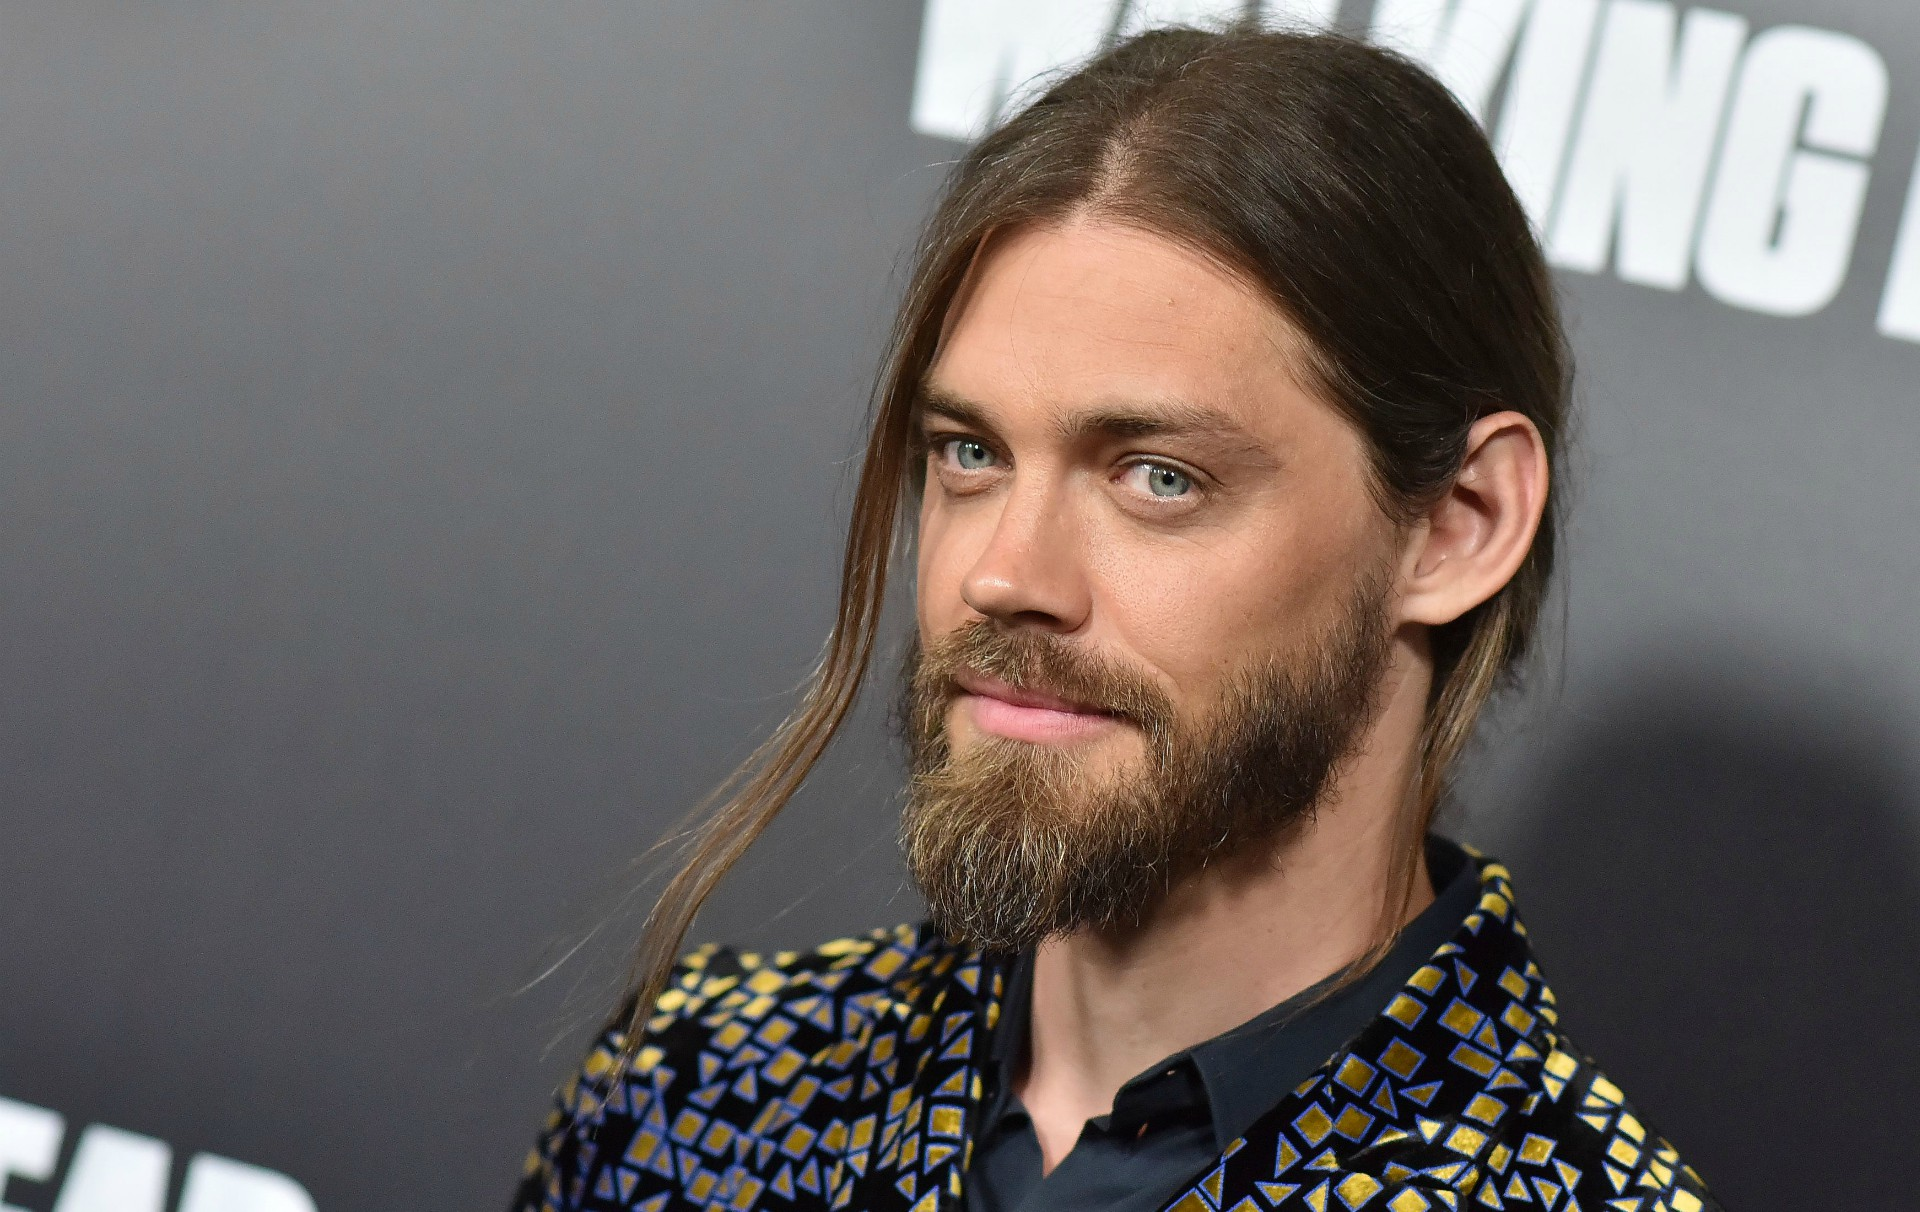 Walking Dead actor Tom Payne is engaged to model Jennifer Akerman